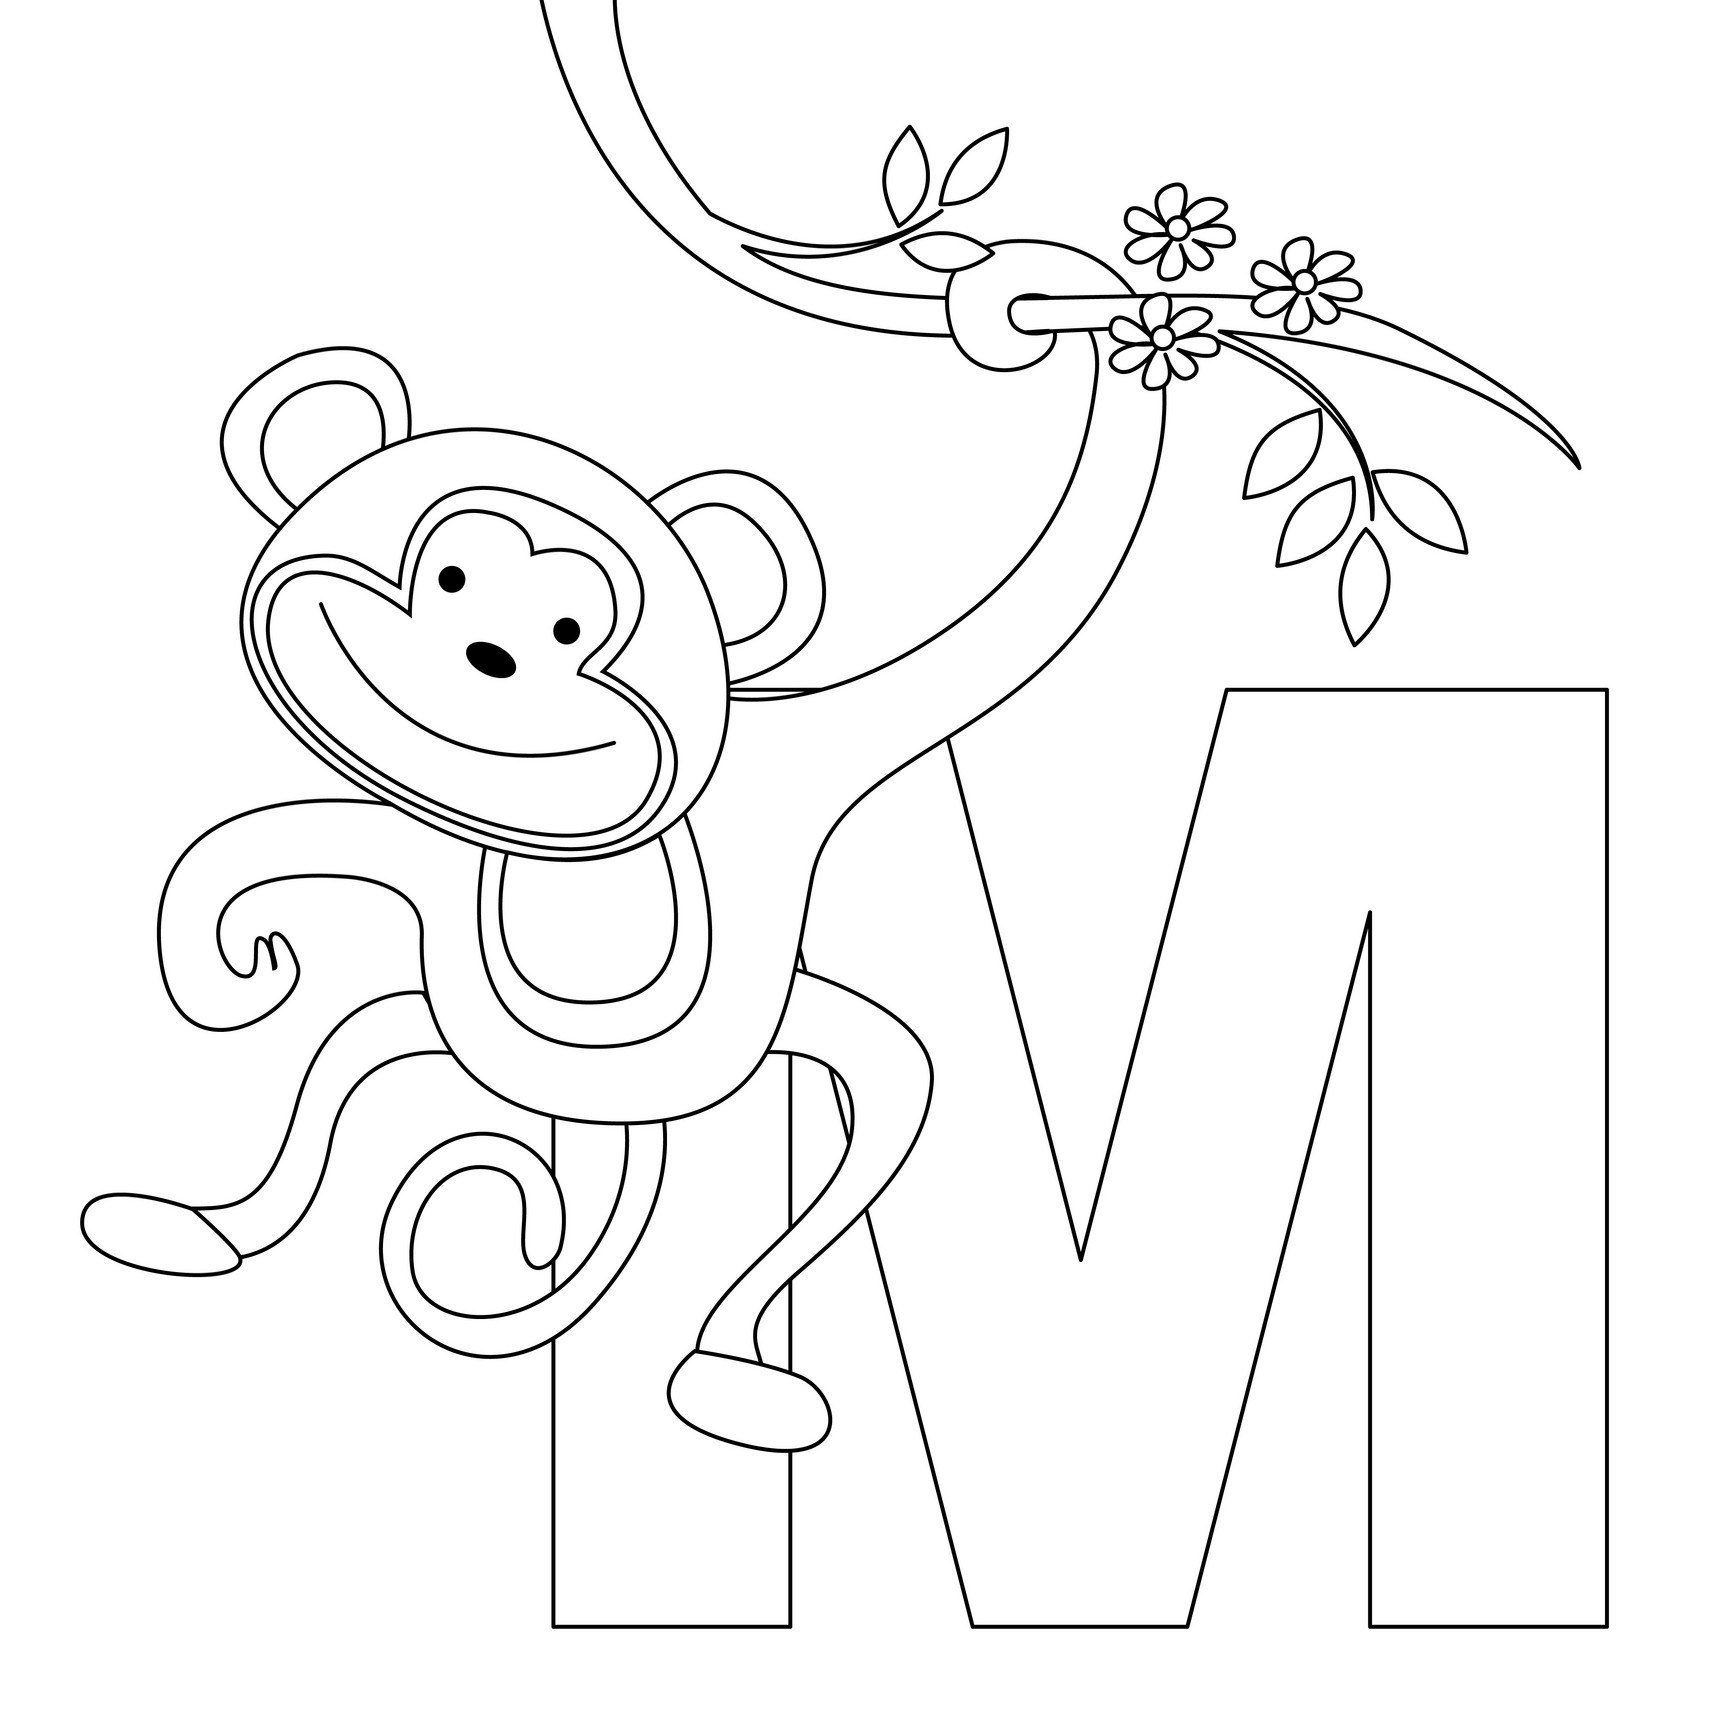 coloring pages of m - photo#30